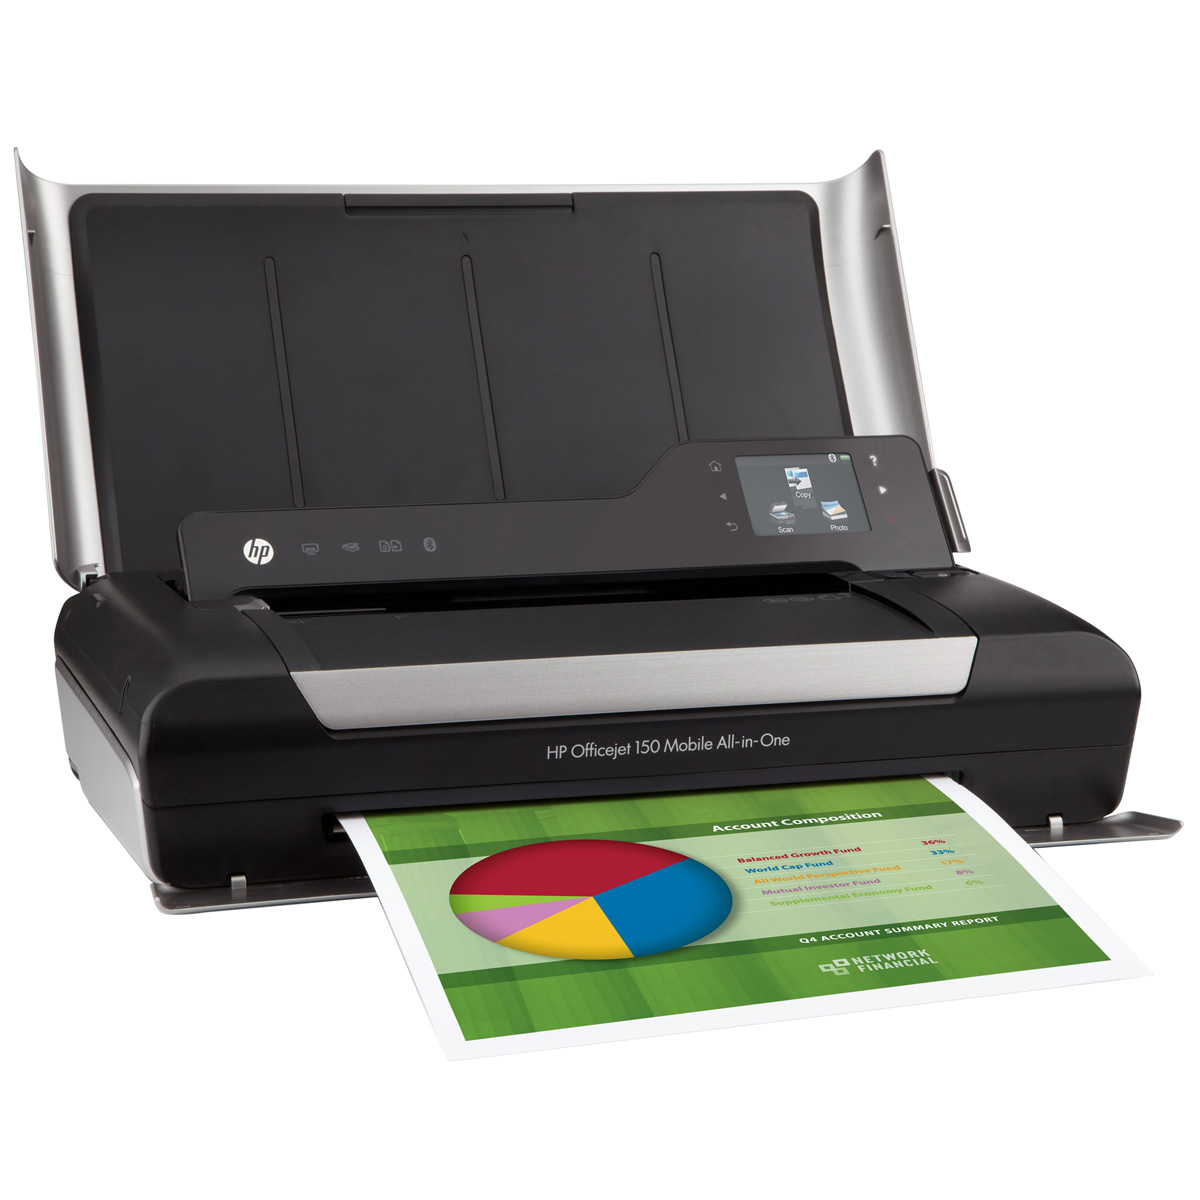 hp officejet 150 mobile all in one imprimante. Black Bedroom Furniture Sets. Home Design Ideas